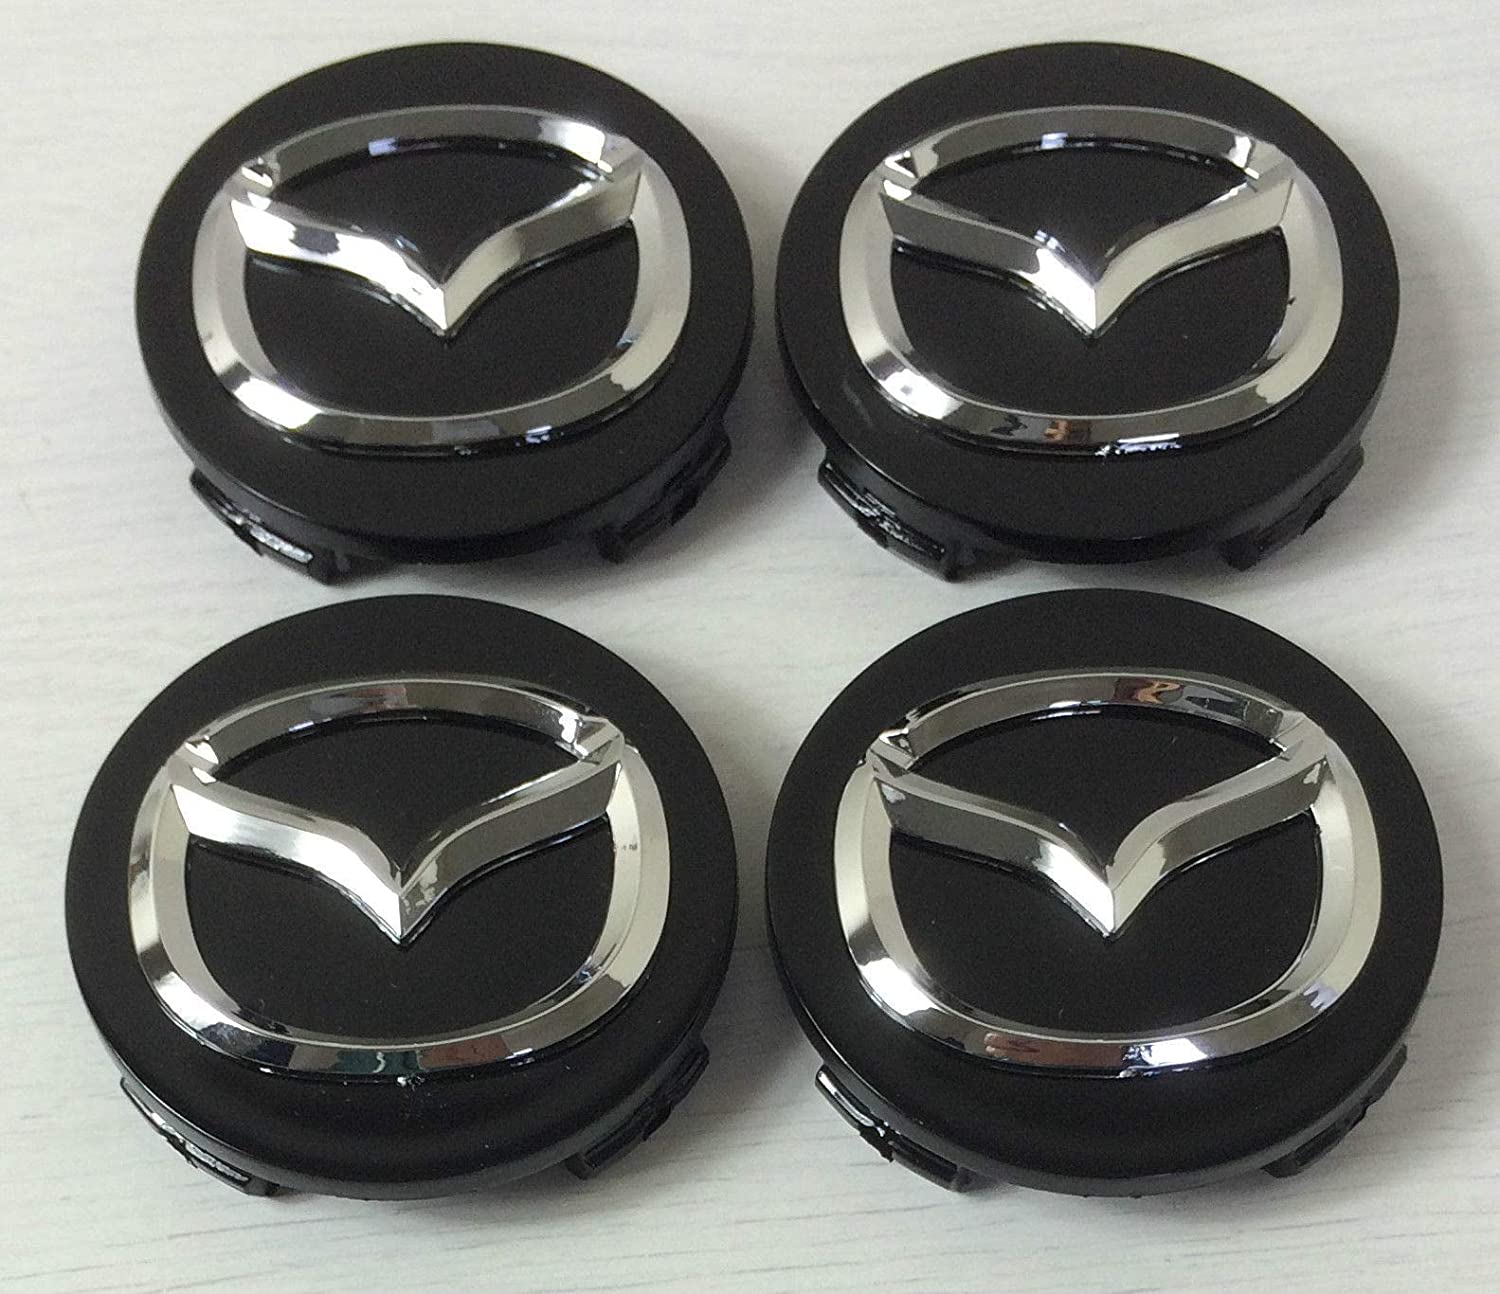 LIBRA Compatible x4 Hubcaps 56mm Chrome for Emblem Badge Hub Centre Caps